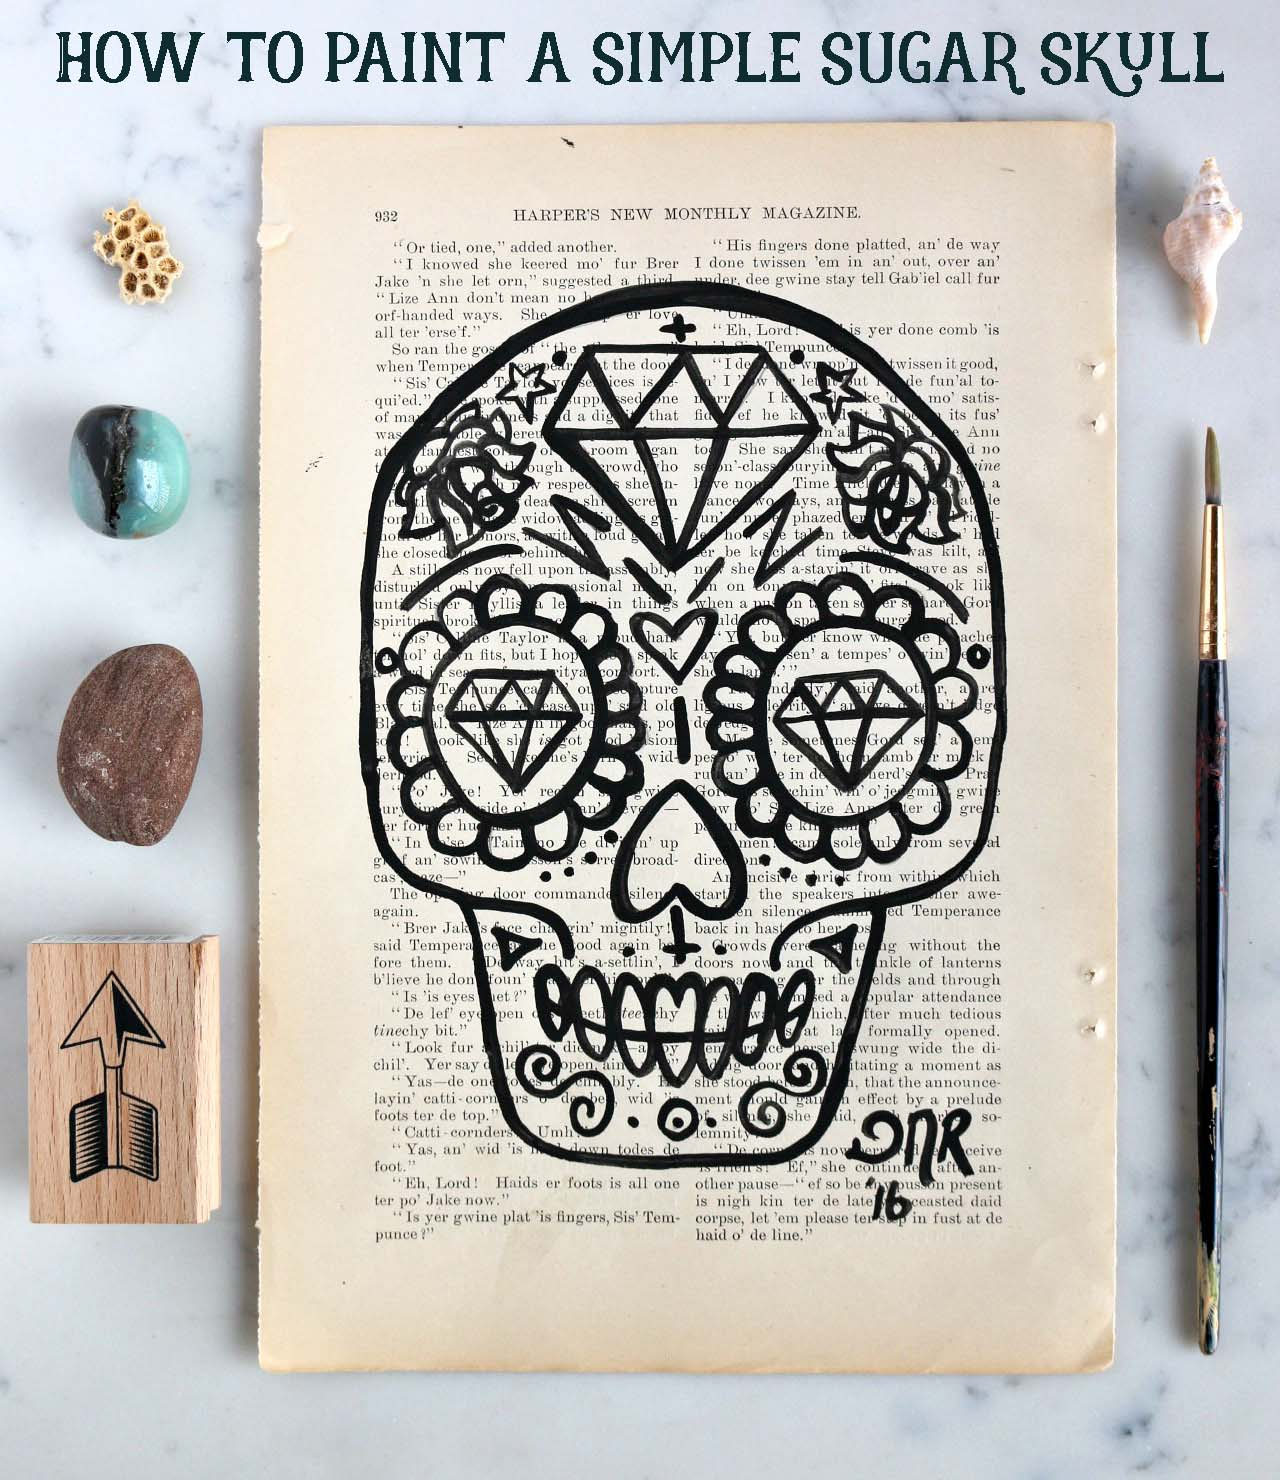 how to paint a simple sugar skull design free download